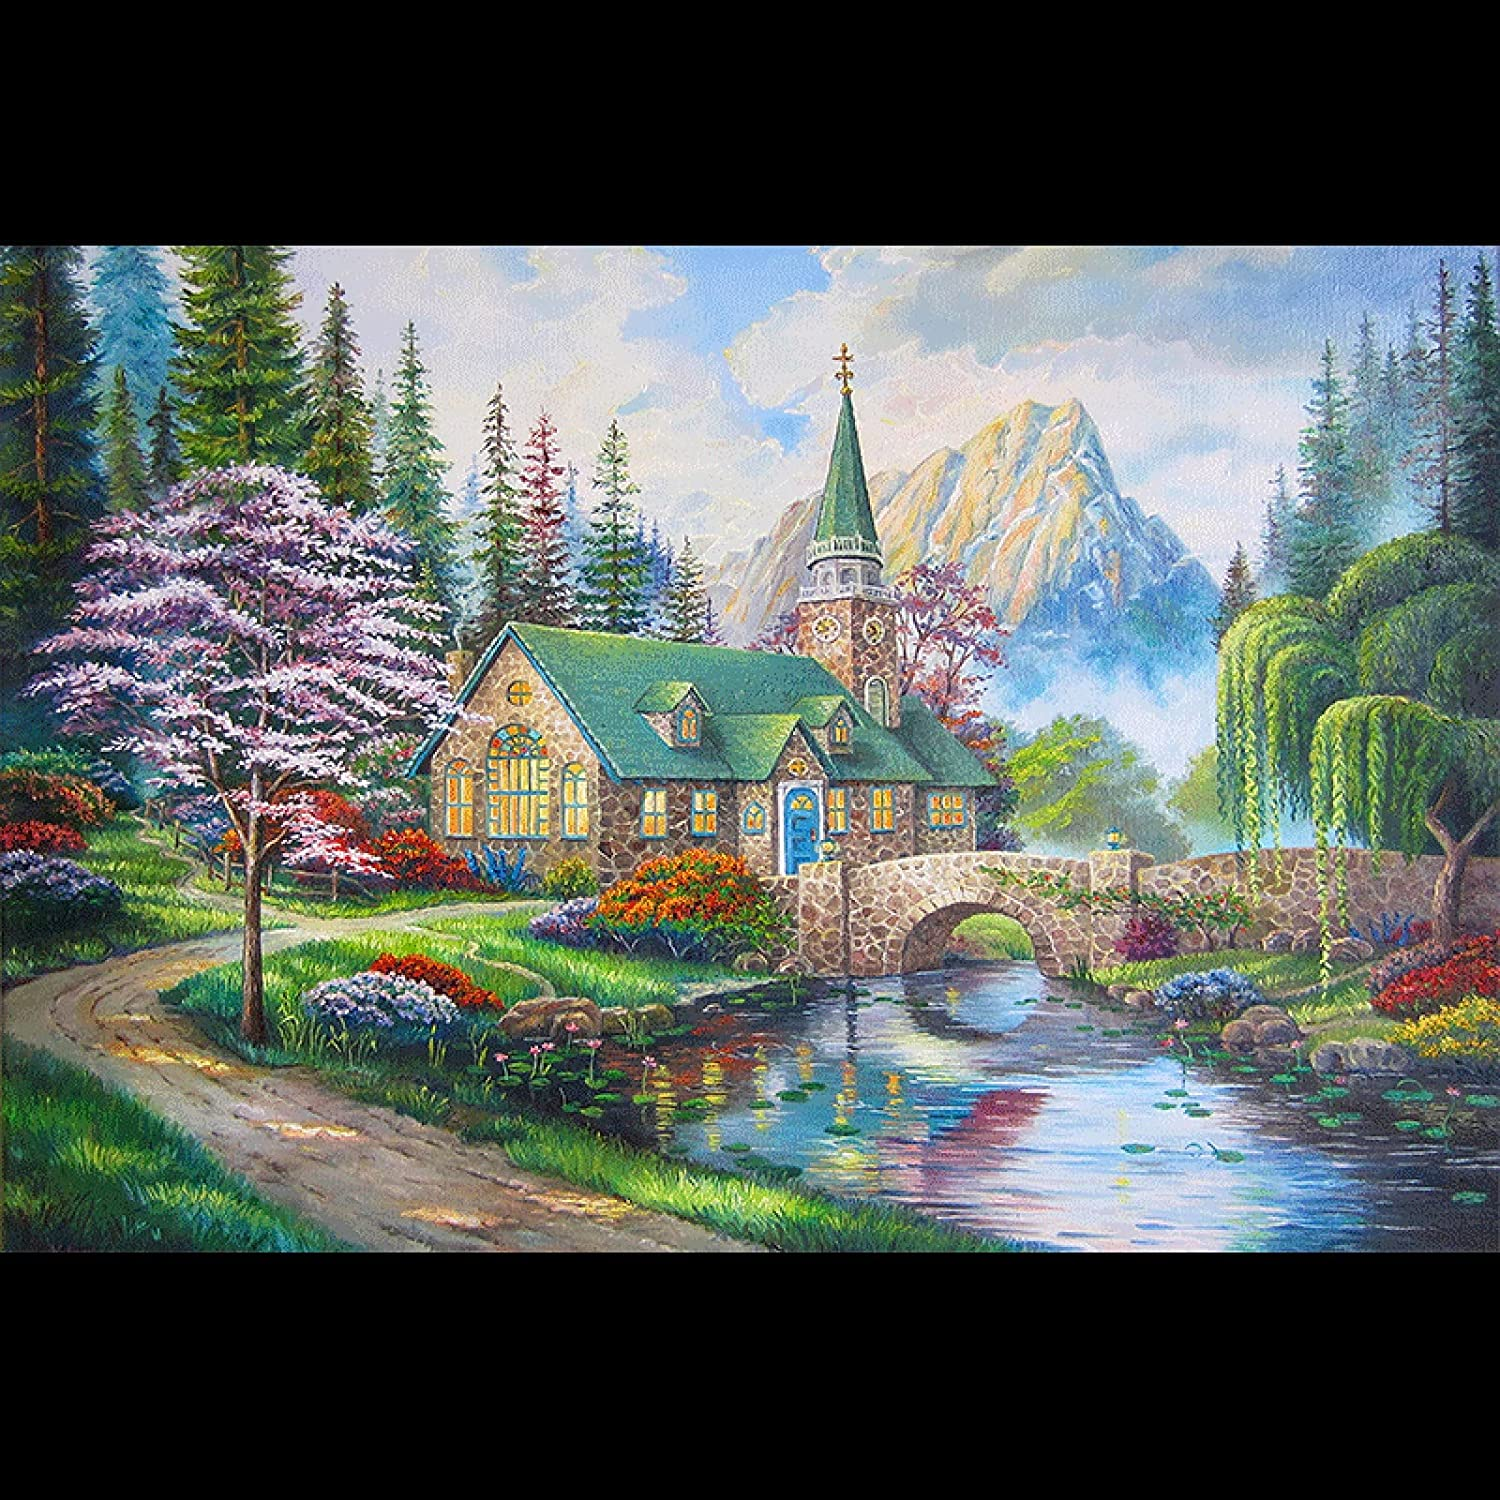 Church in The Forest Jigsaw Puzzles 1500 1000 2000 Today's only 3000 500 4000 Low price